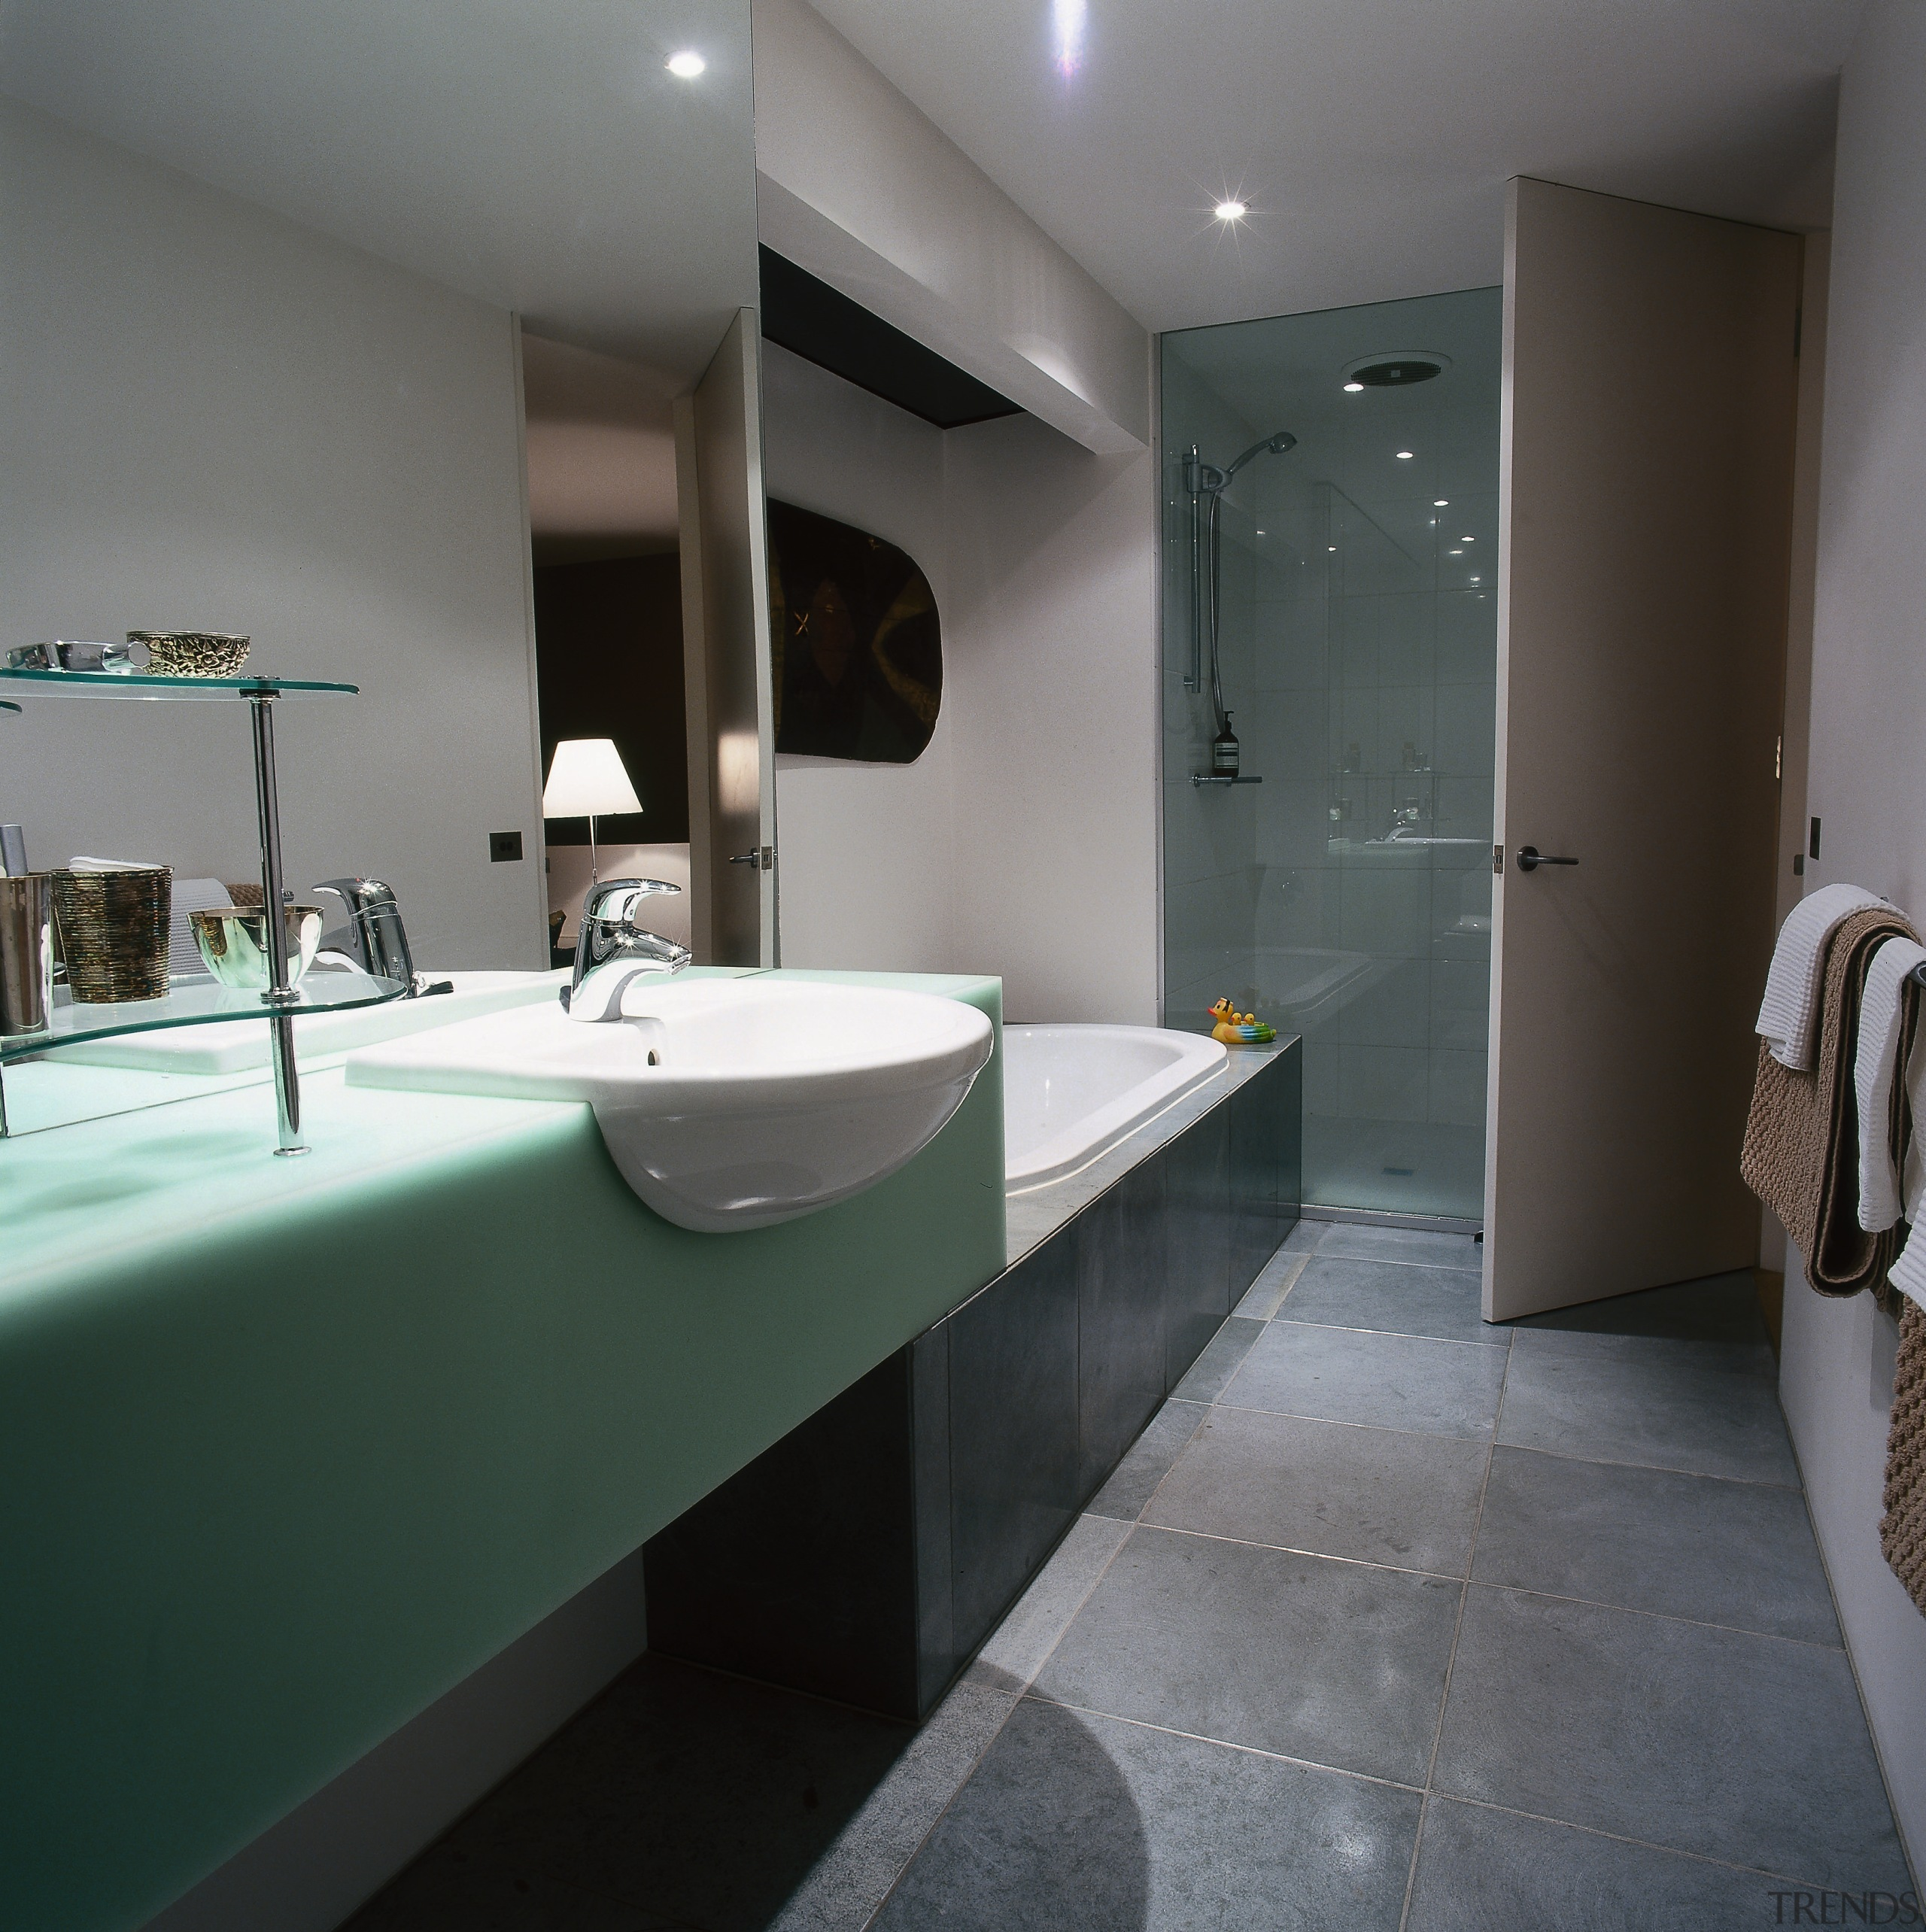 View of this home's ensuite - View of architecture, bathroom, floor, interior design, real estate, room, sink, gray, black